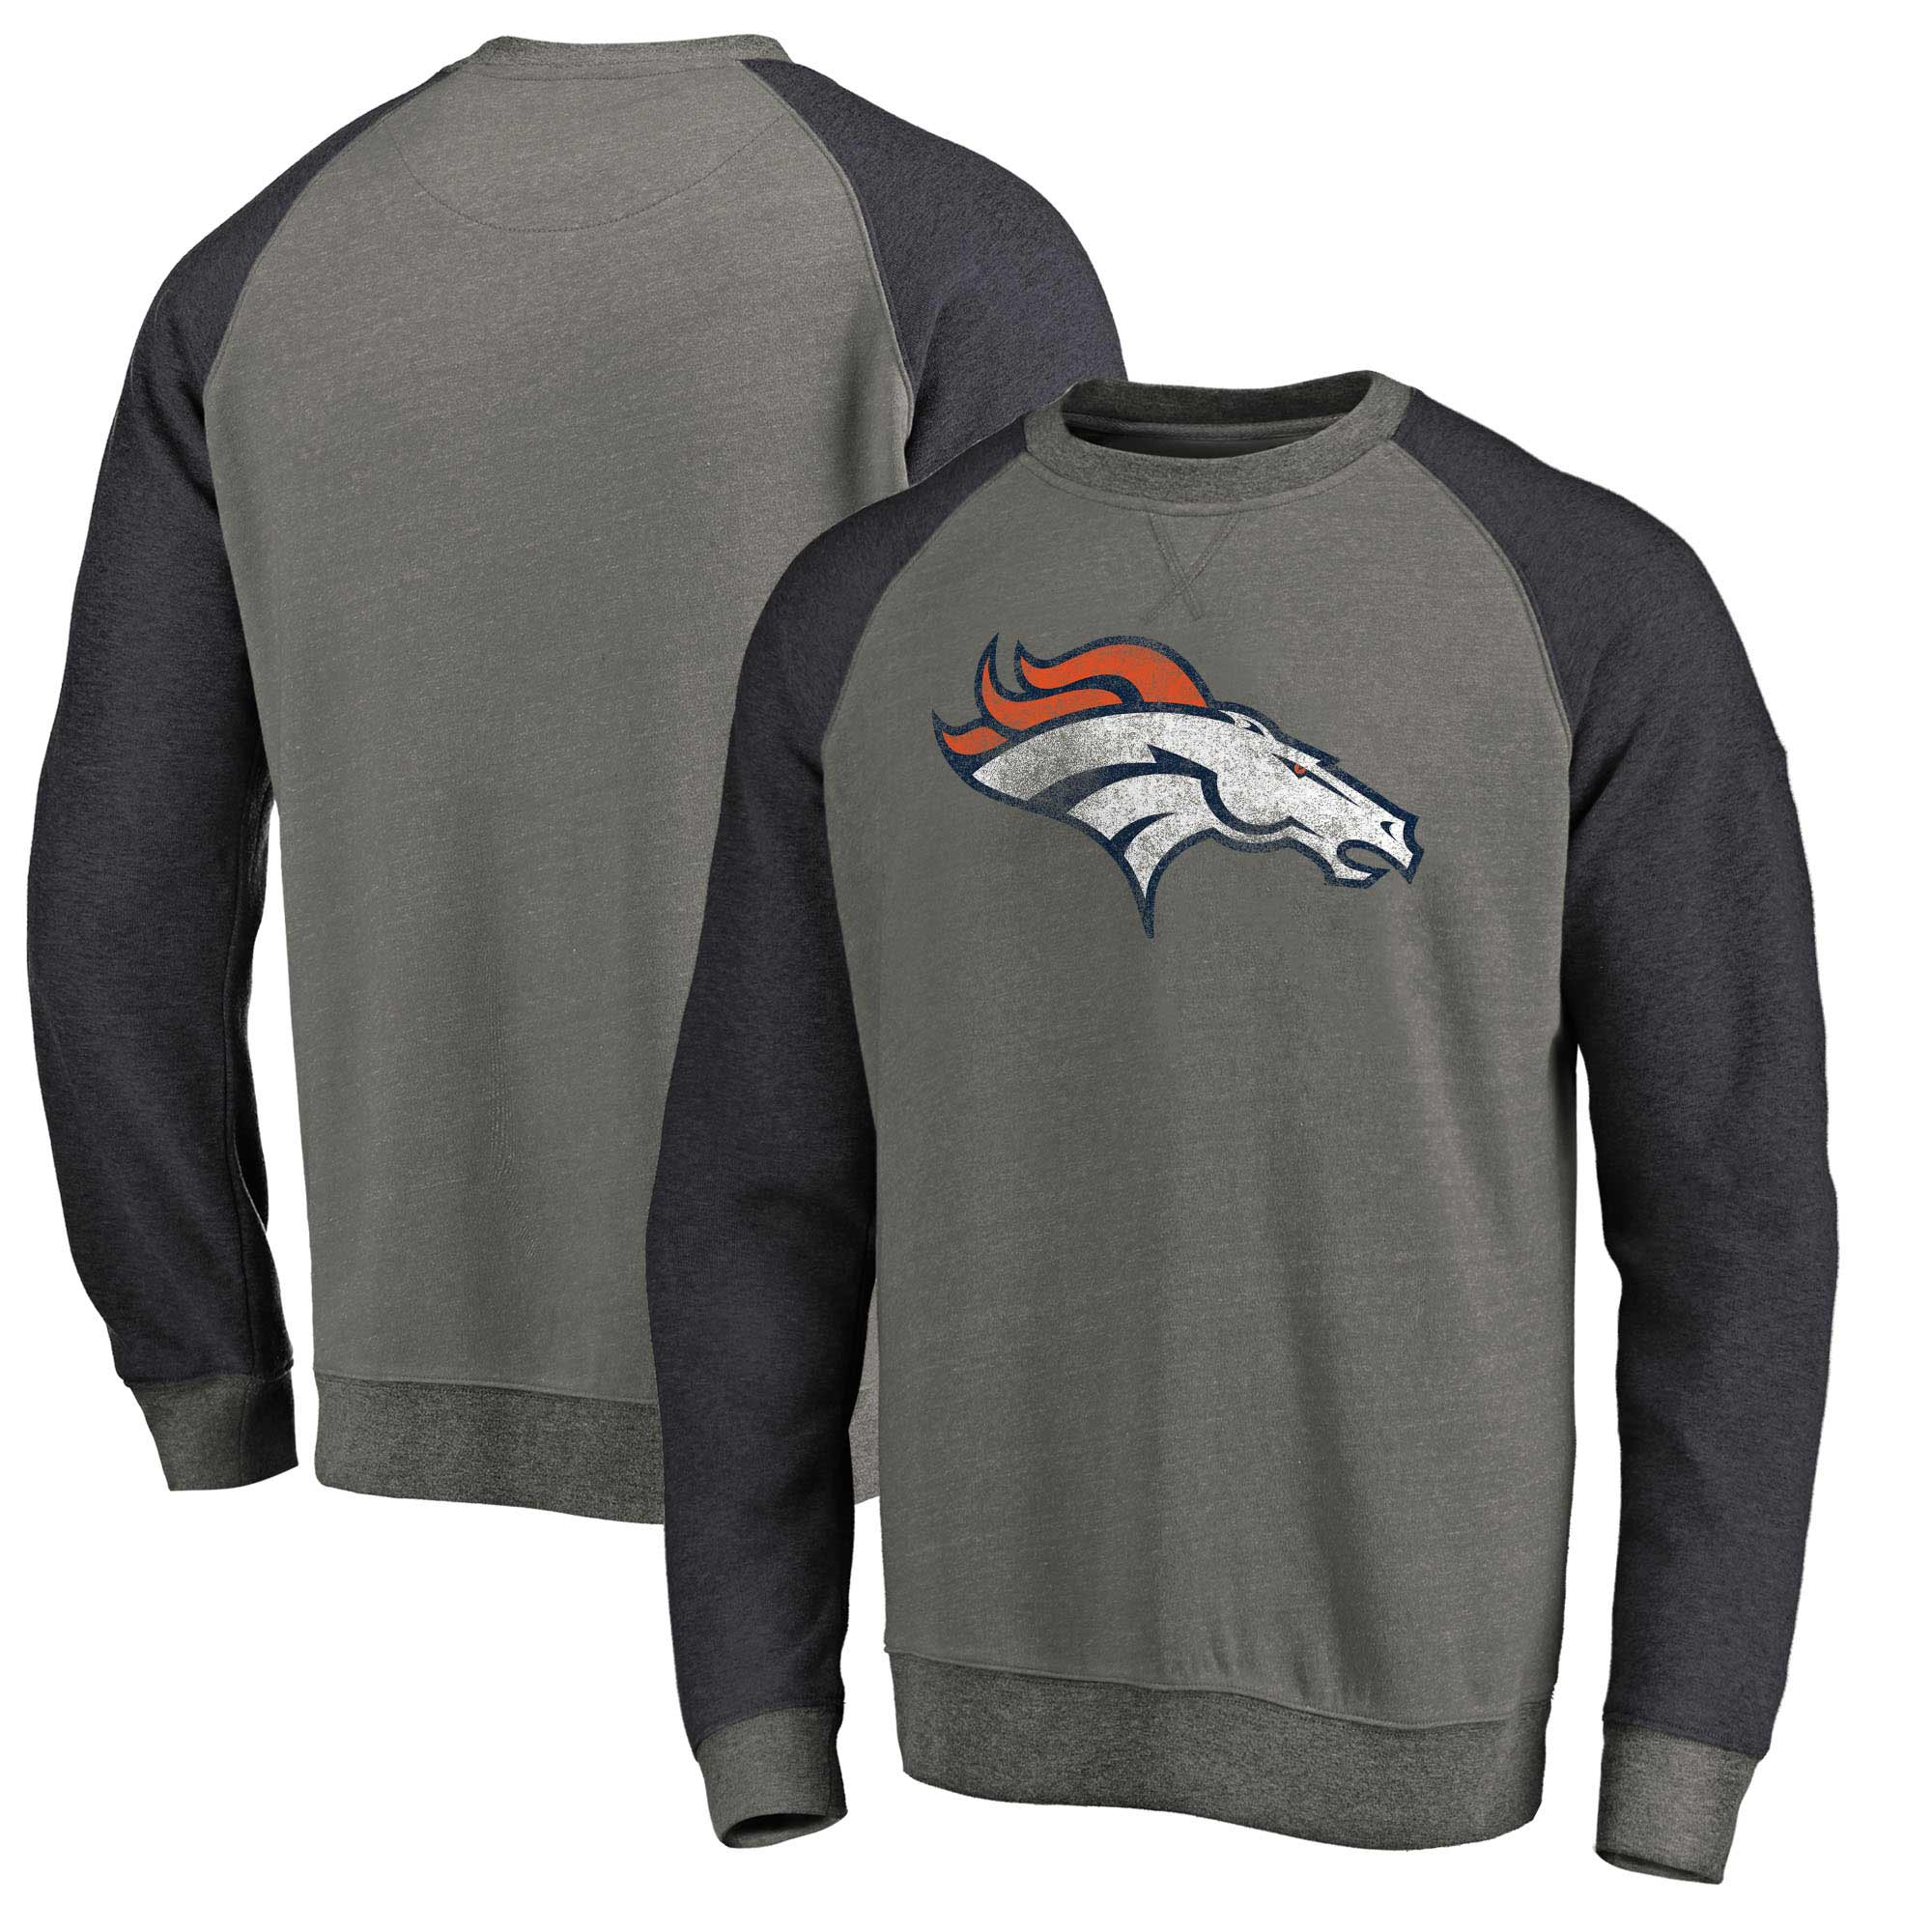 Denver Broncos NFL Pro Line by Fanatics Branded Distressed Team Tri-Blend Pullover Sweatshirt - Heathered Gray/Navy